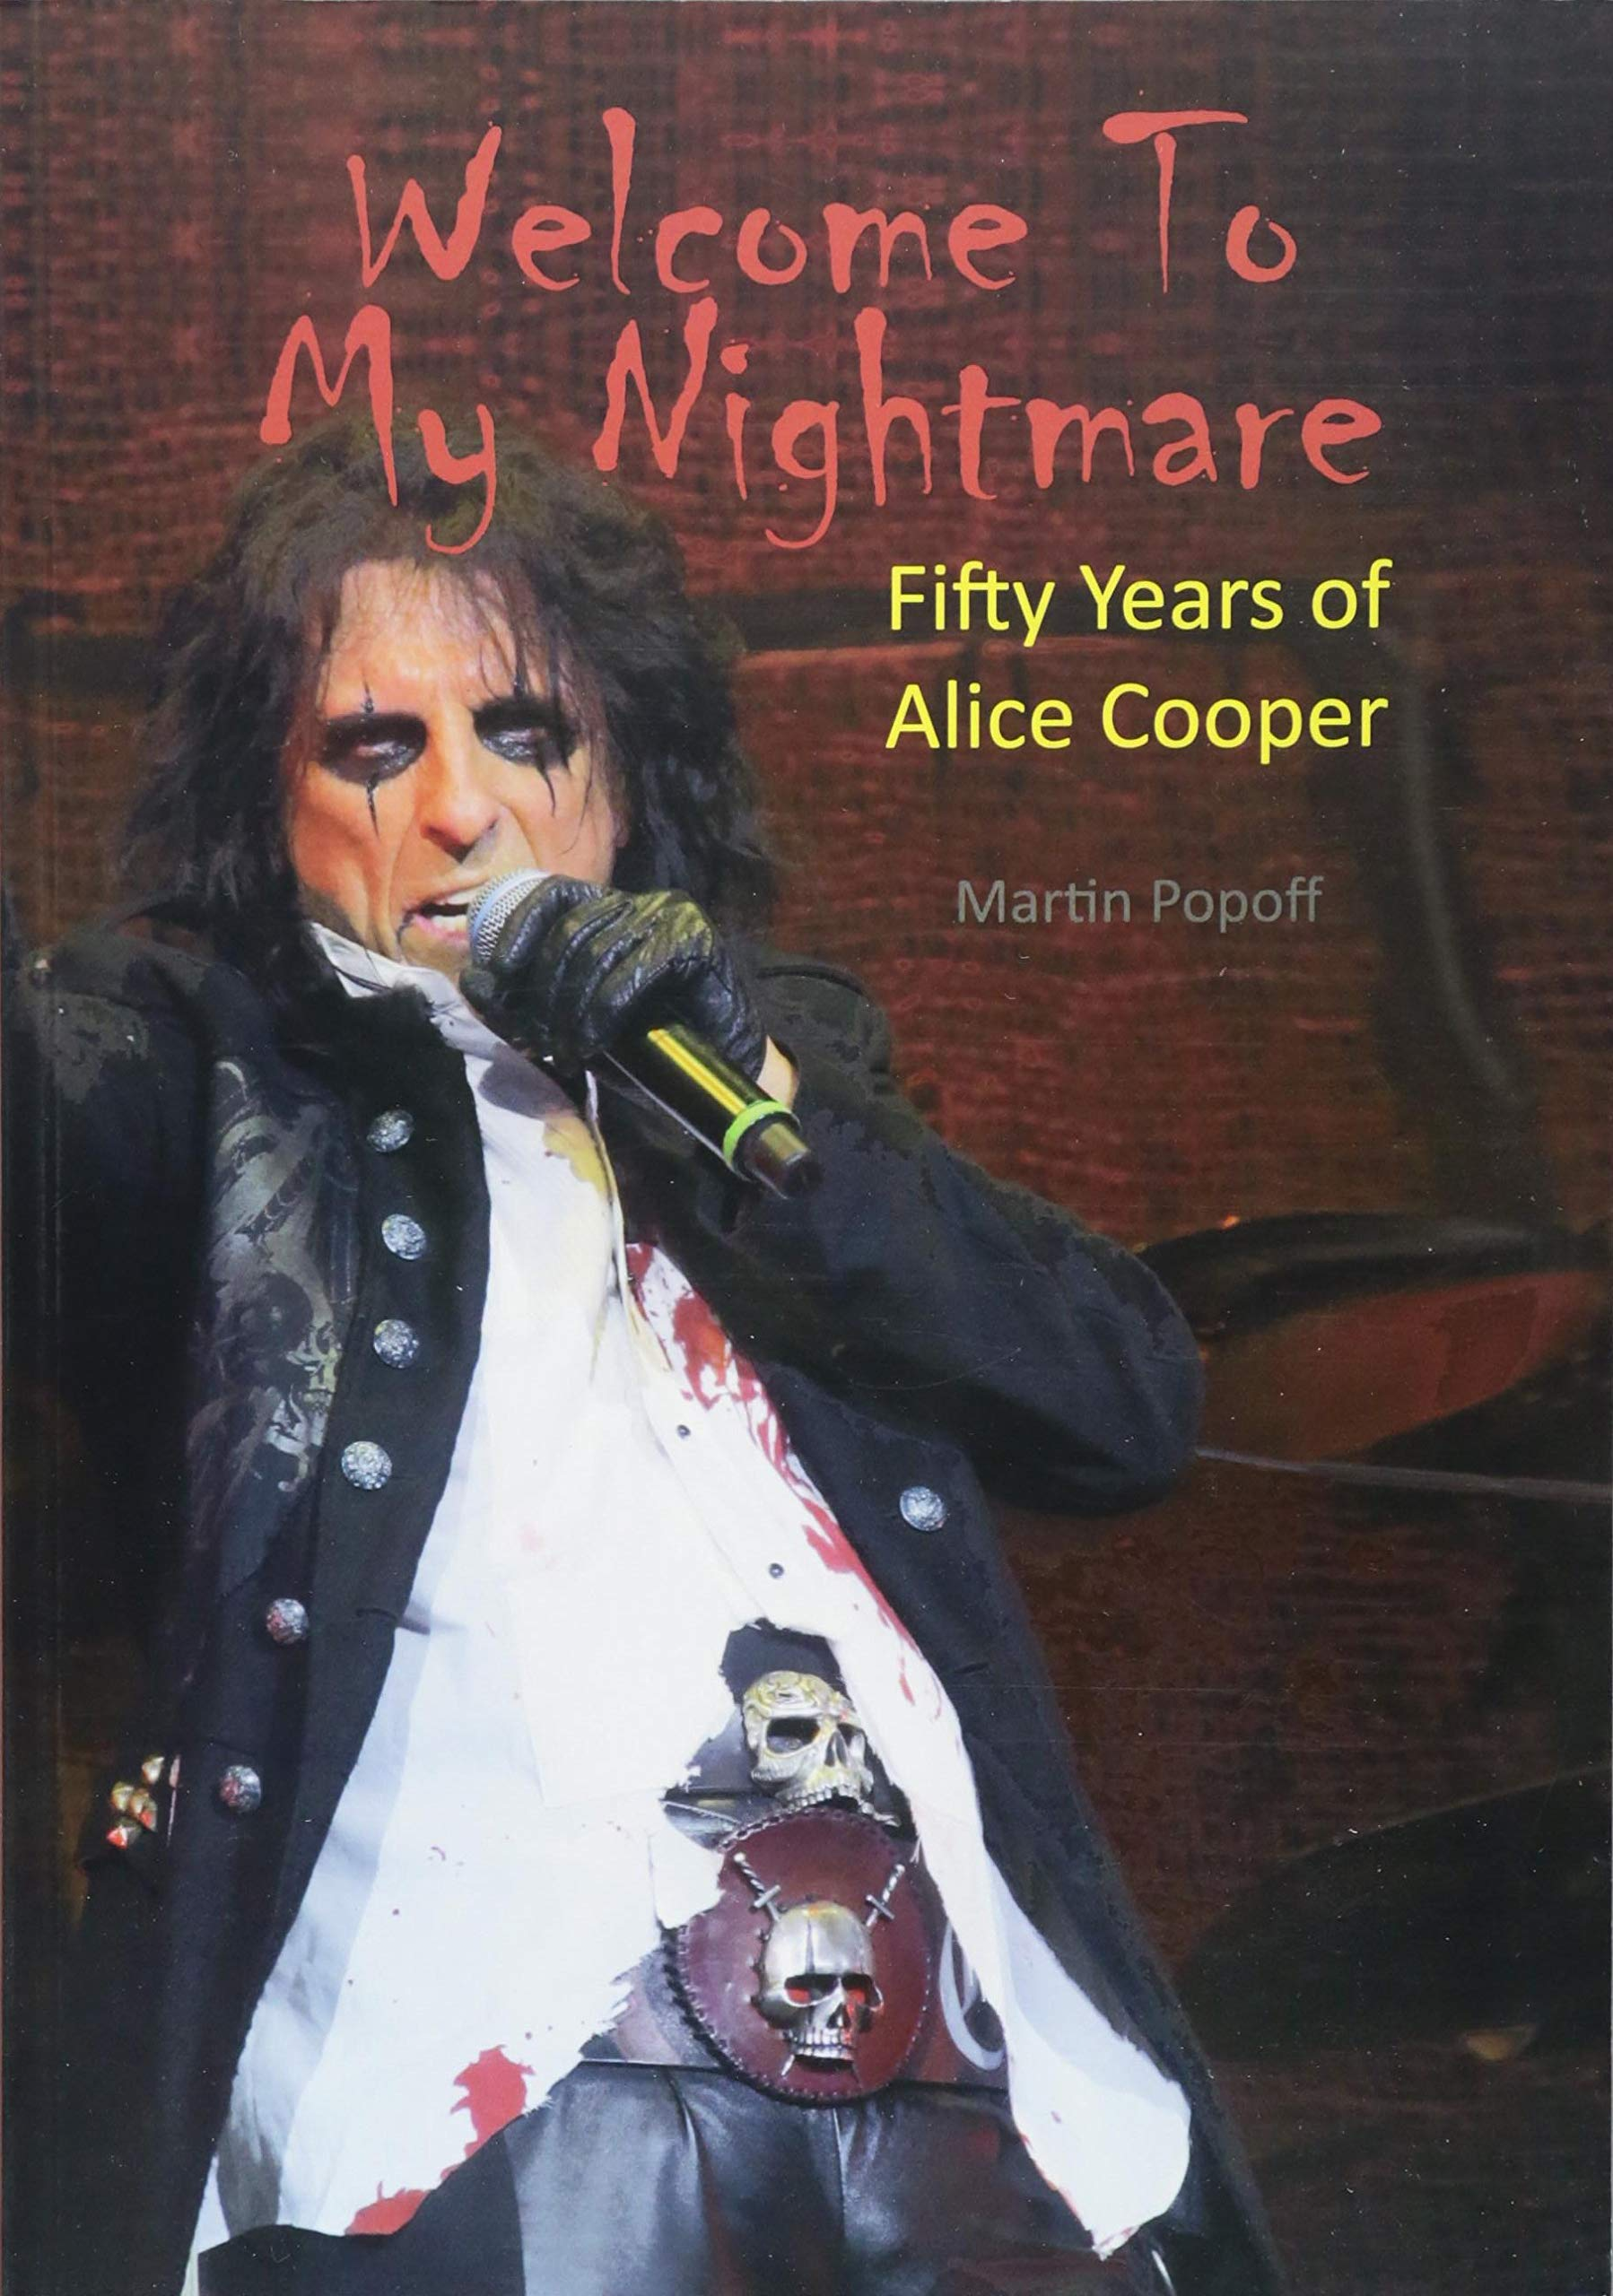 e114b1bd3bcfe Welcome To My Nightmare: Fifty Years of Alice Cooper: Amazon.co.uk ...